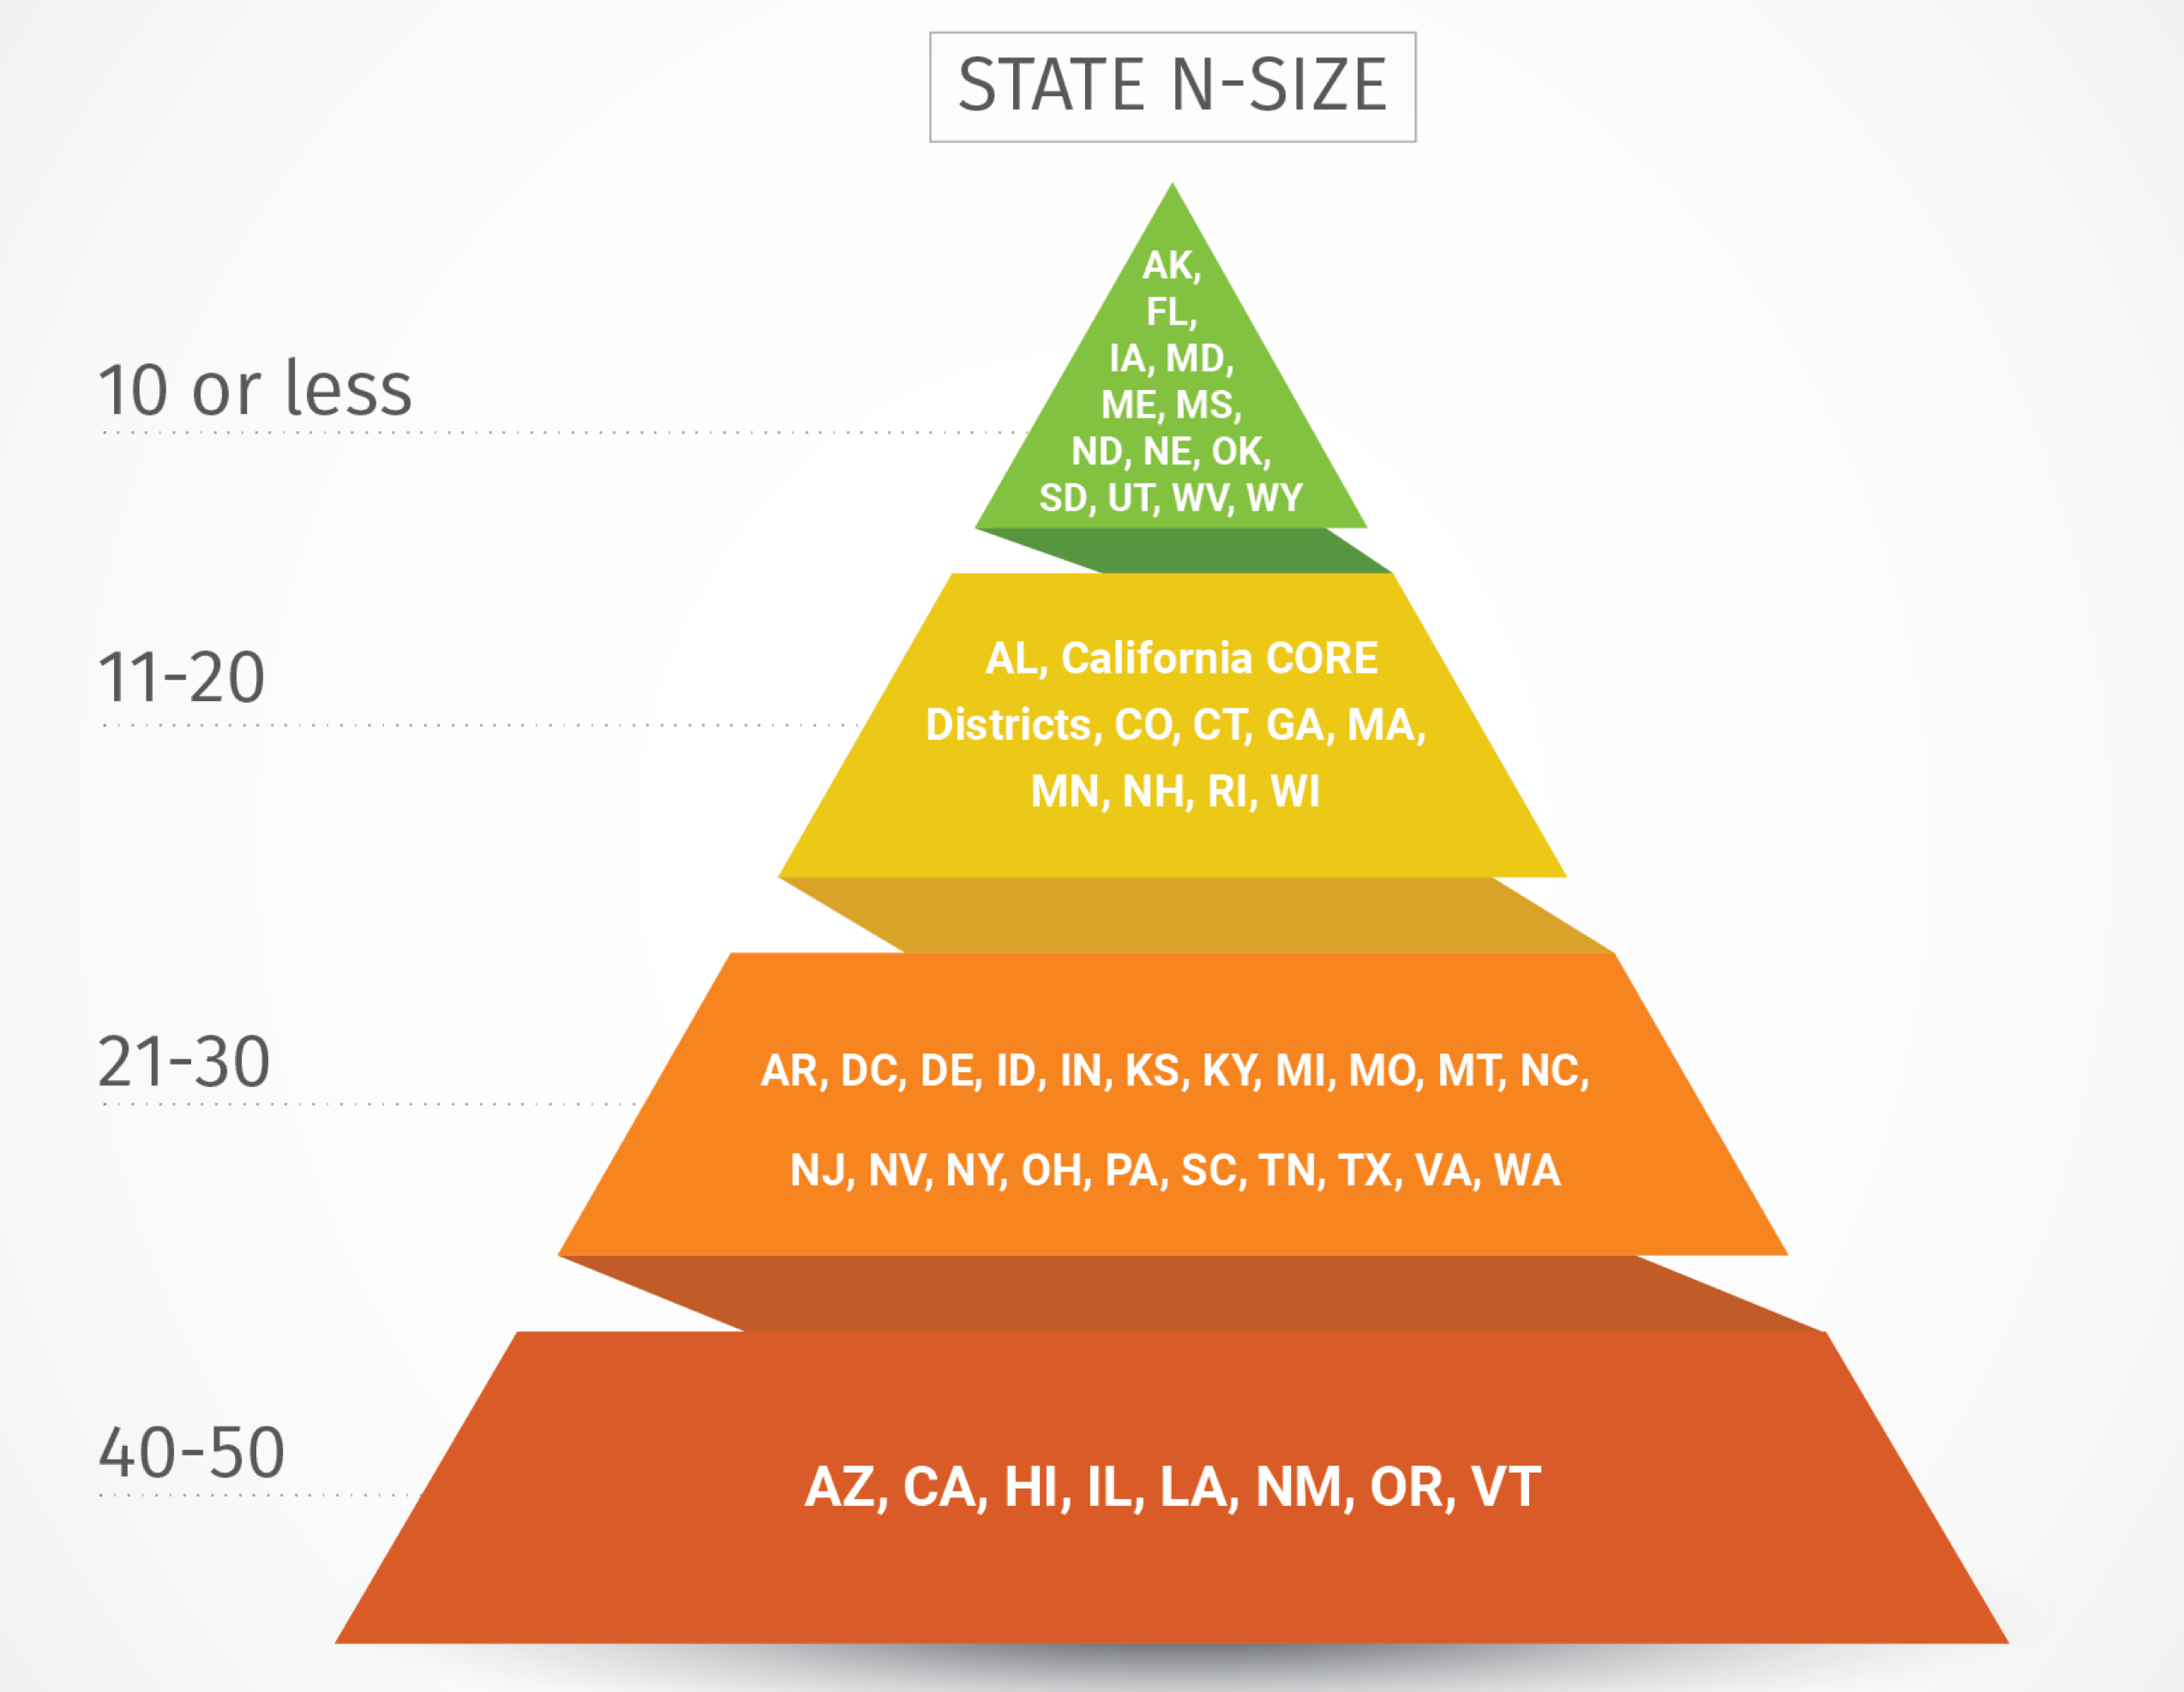 State N-Size